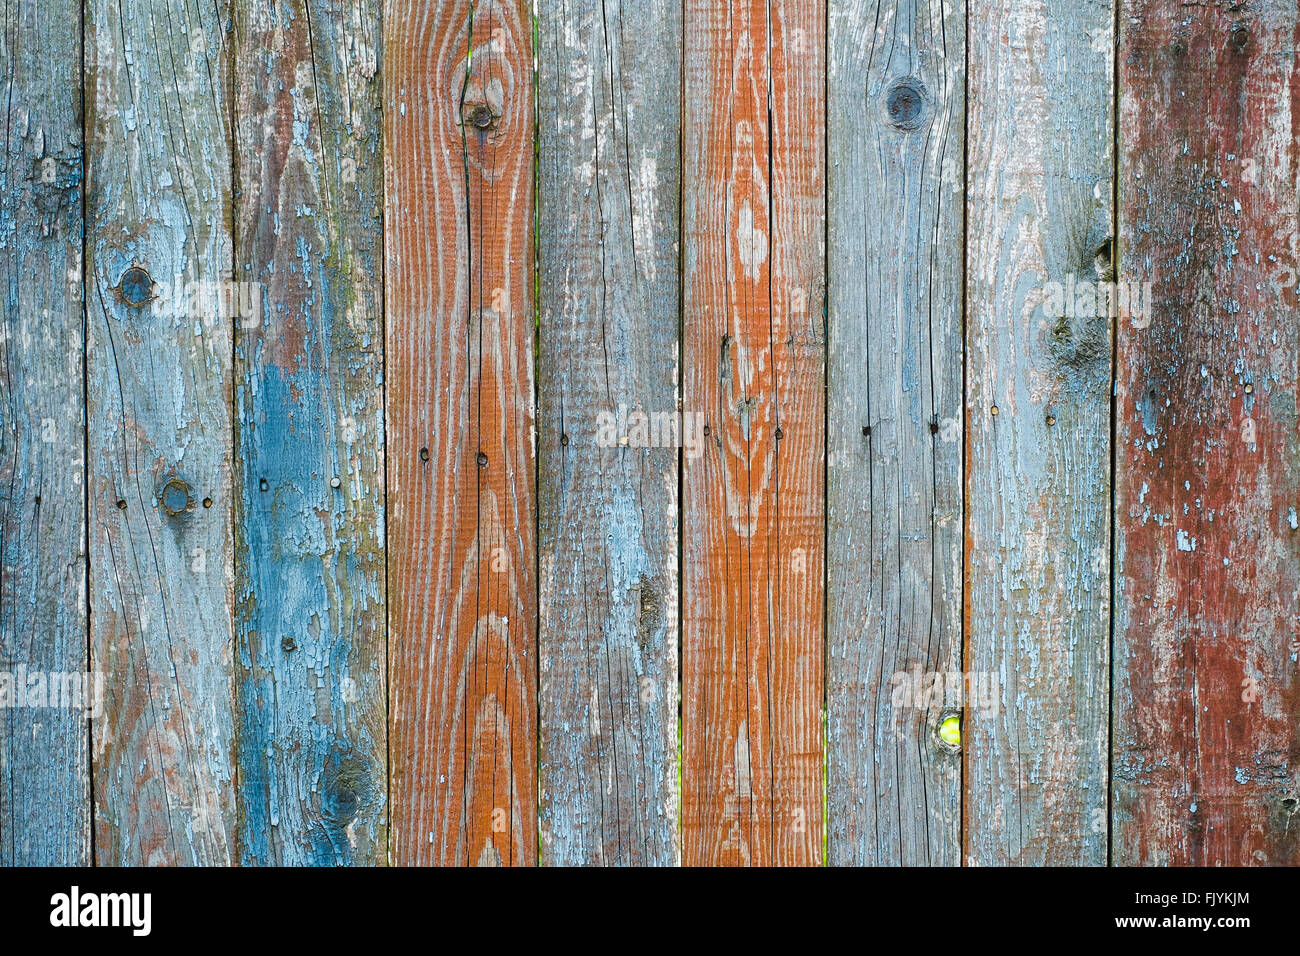 Vintage Wood Background Grunge Wooden Weathered Oak Or